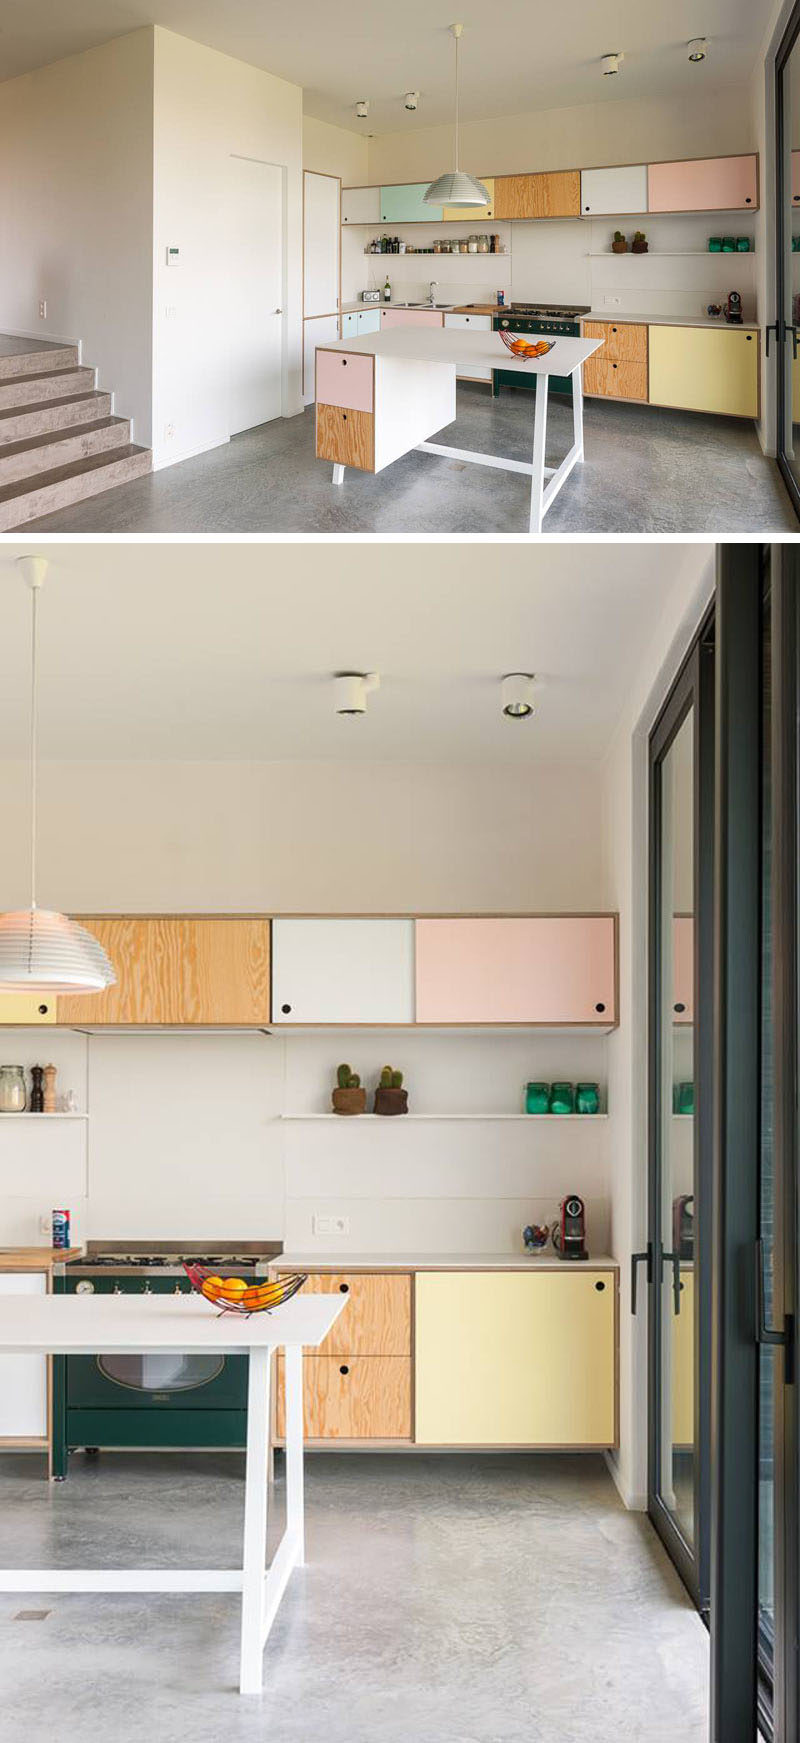 Simple Kitchen Design Idea Cabinet Hardware Alternatives Cut Outs Cut outs can